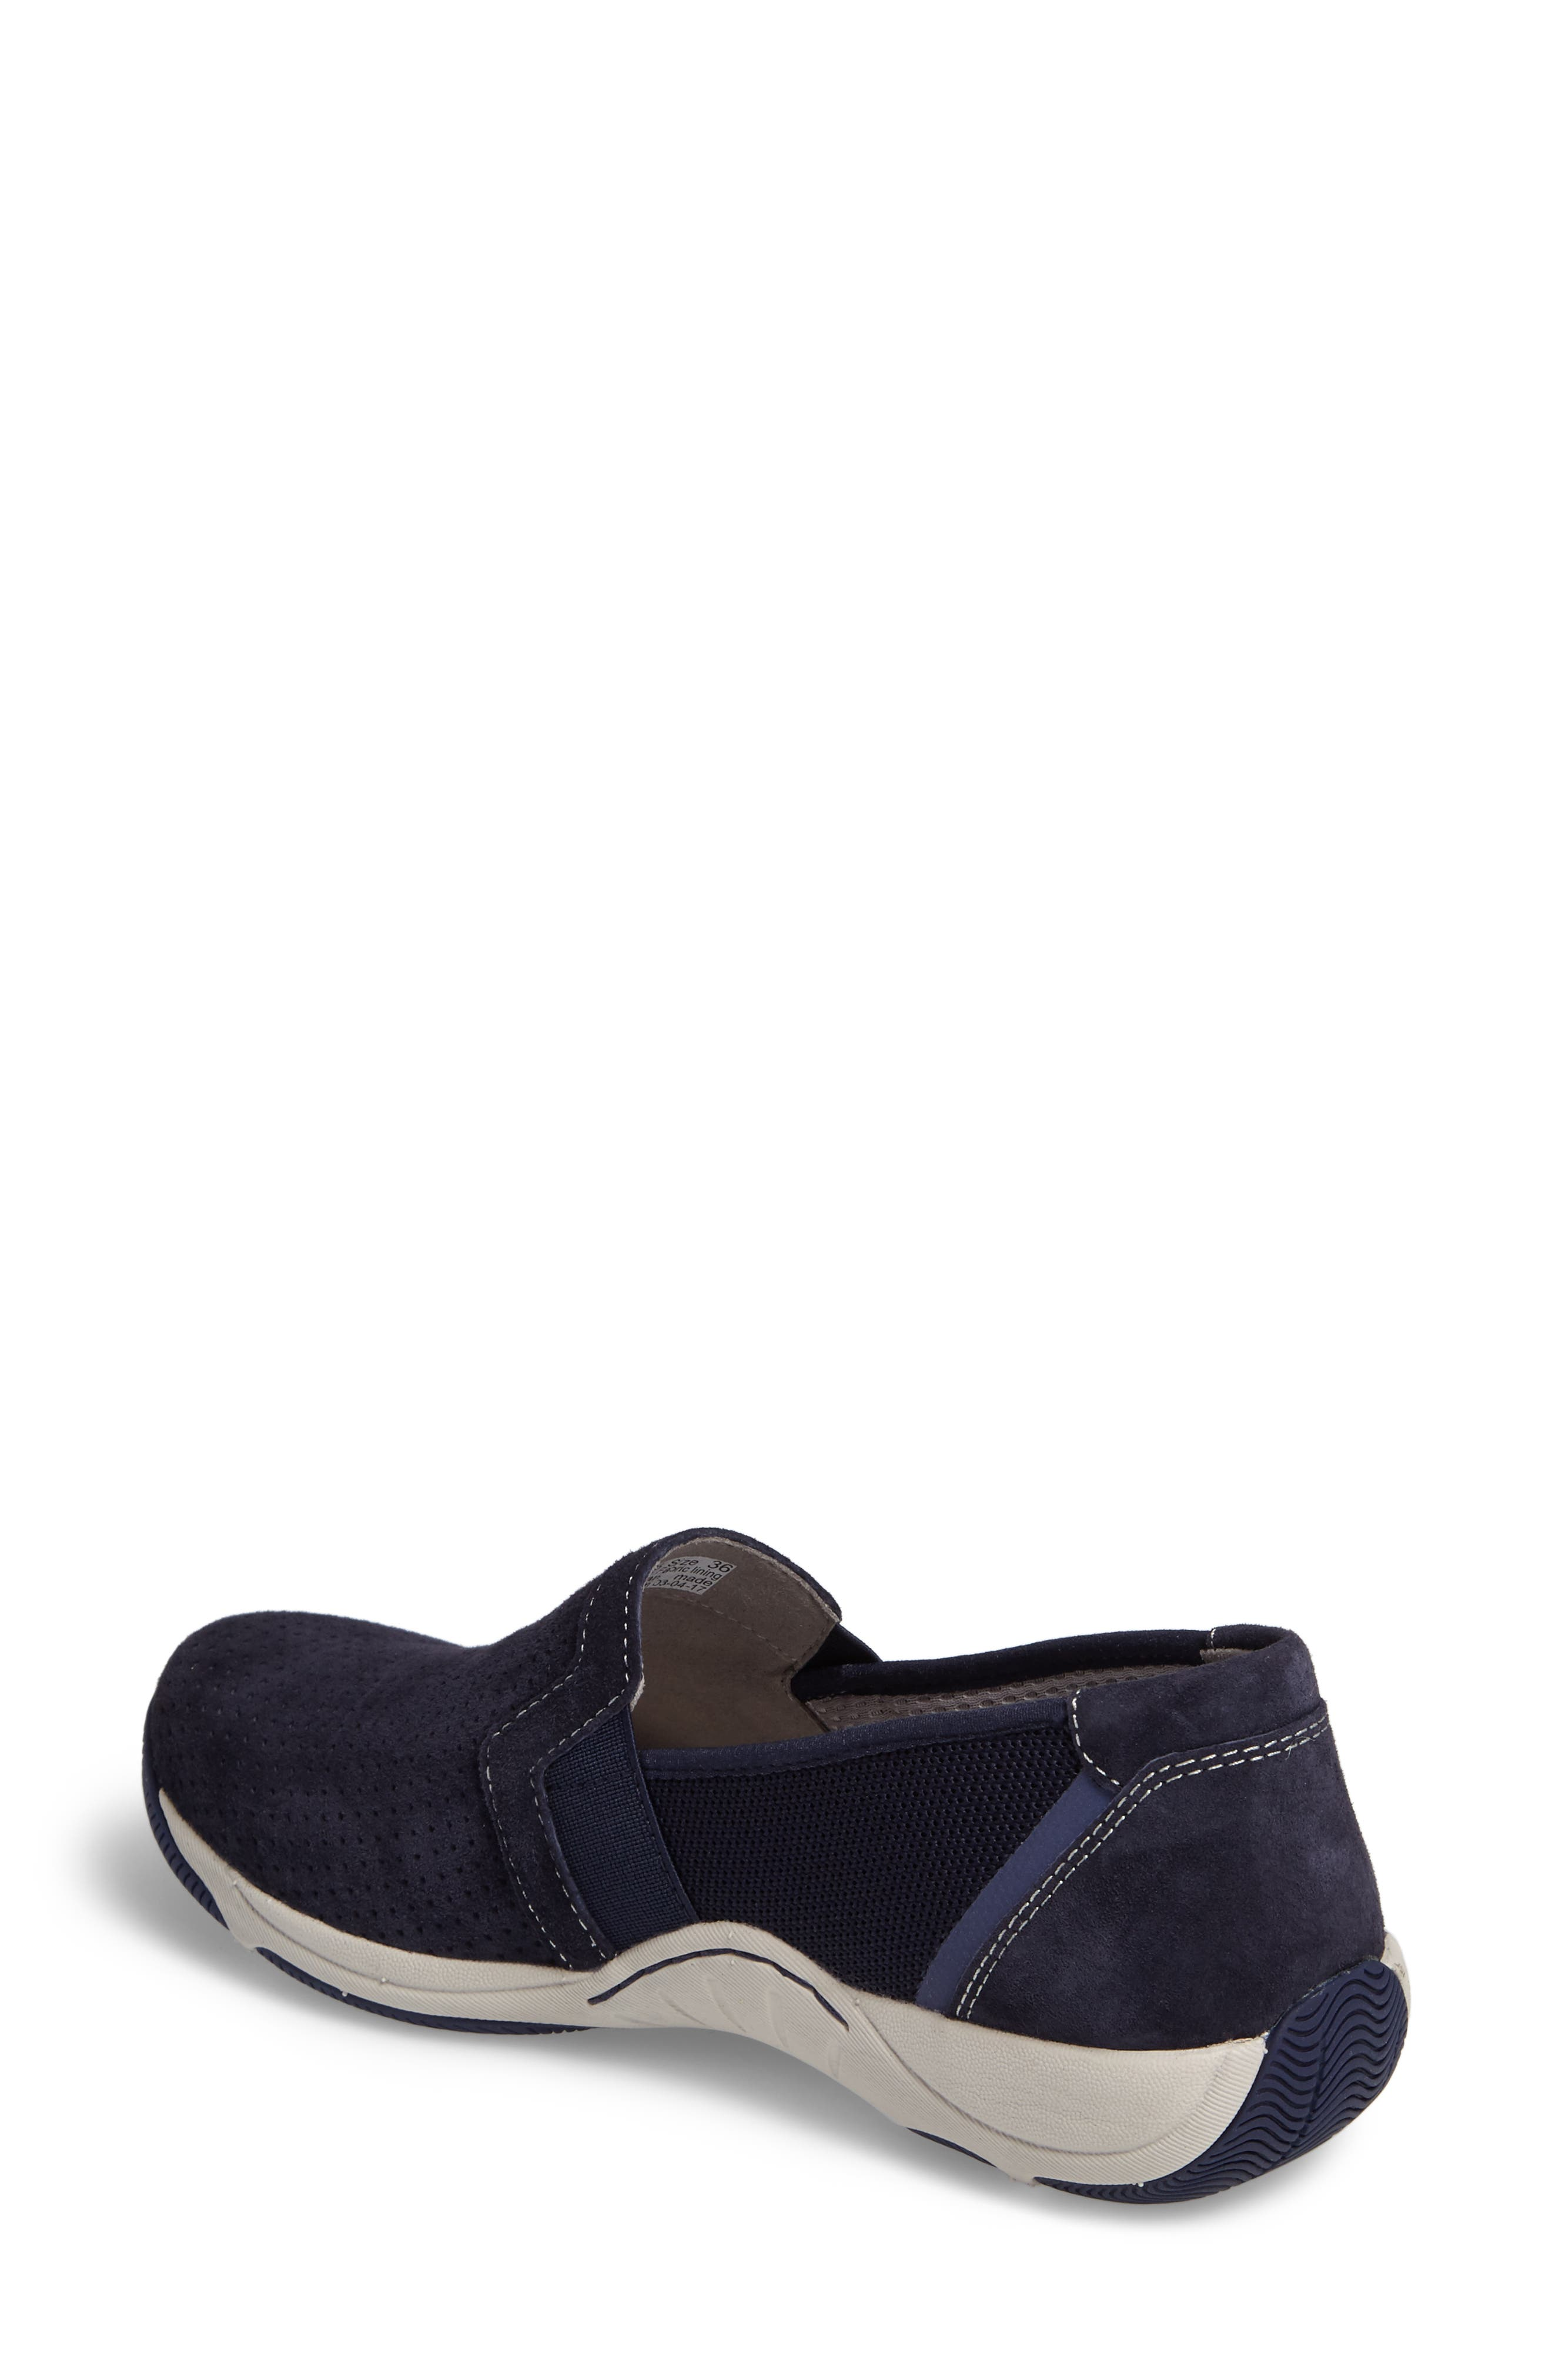 Halifax Collection Halle Slip-On Sneaker,                             Alternate thumbnail 6, color,